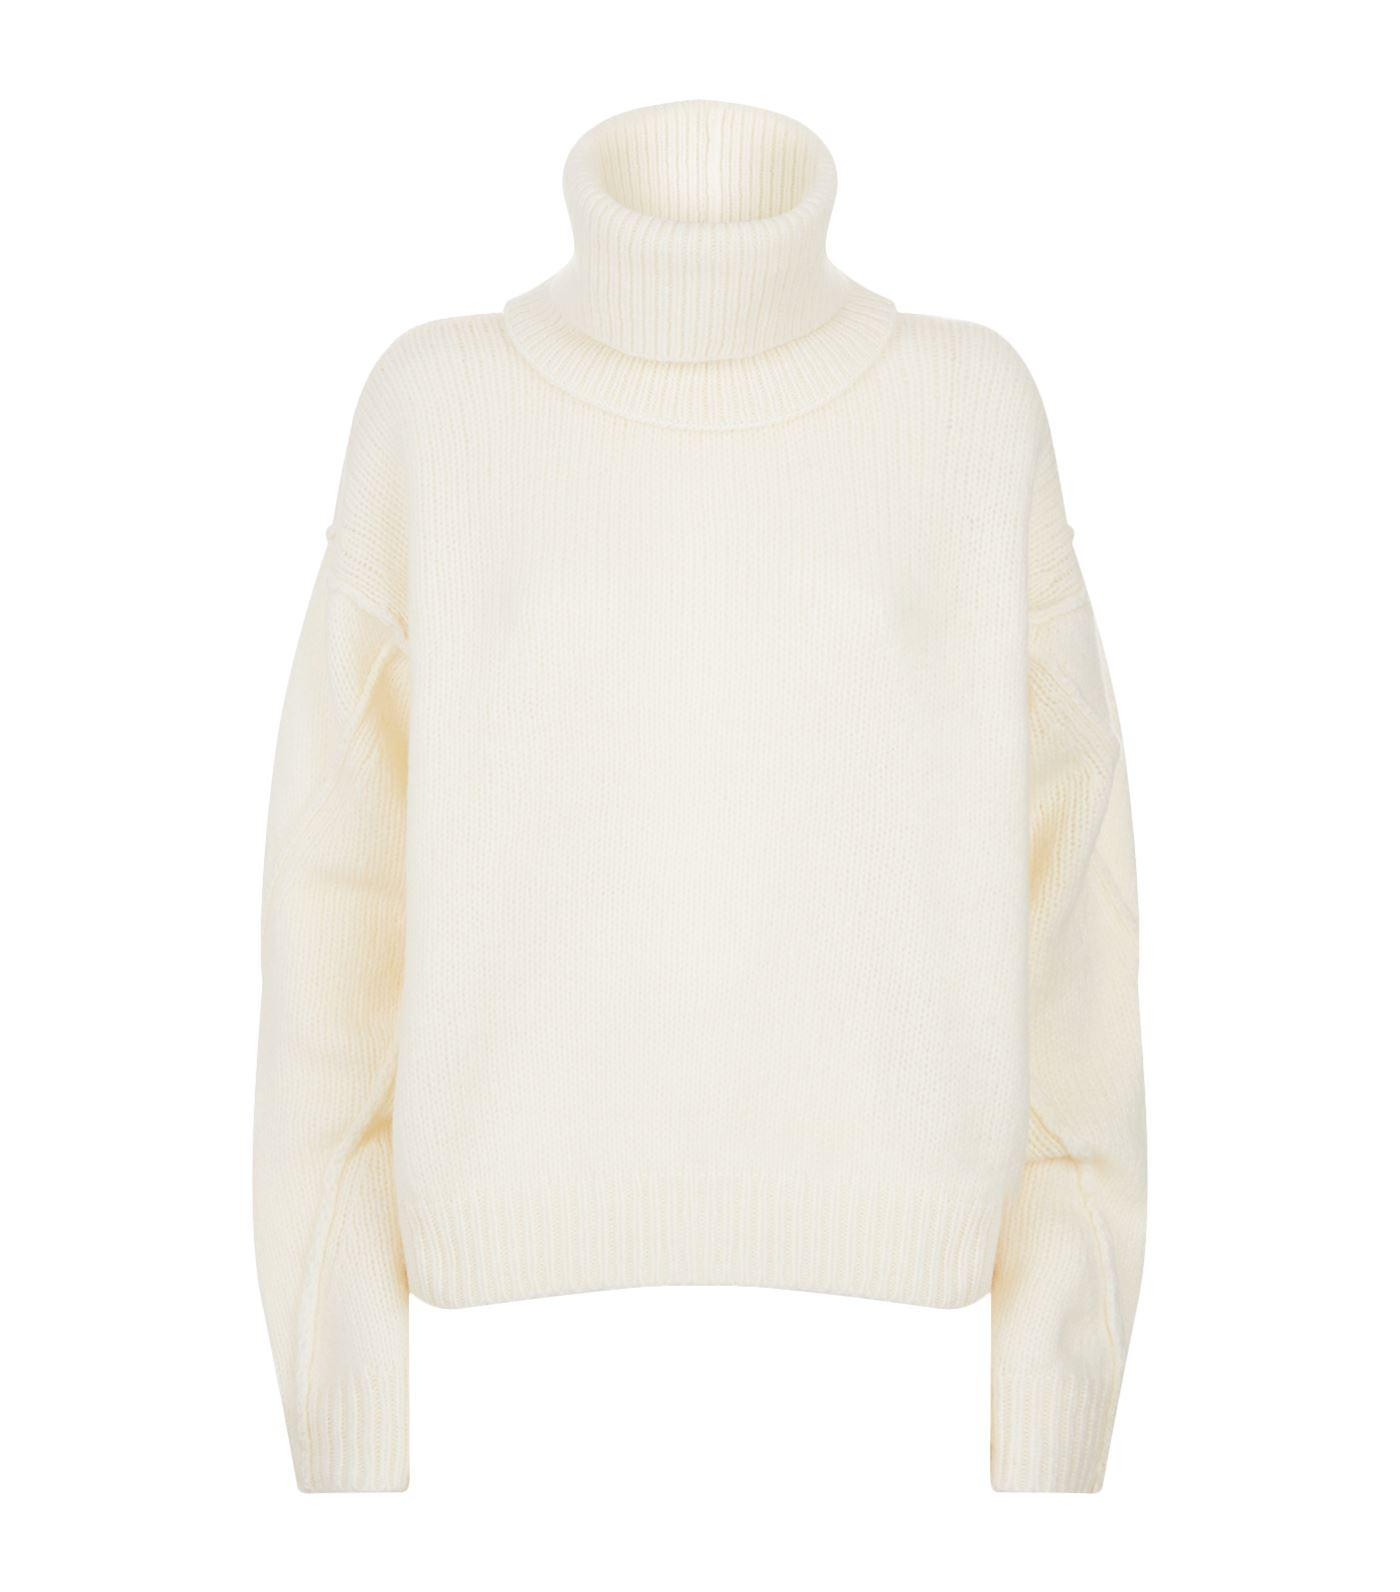 4983ce46c6 Tory Burch Eva Convertible Oversized Wool-Blend Turtleneck Sweater In New  Ivory